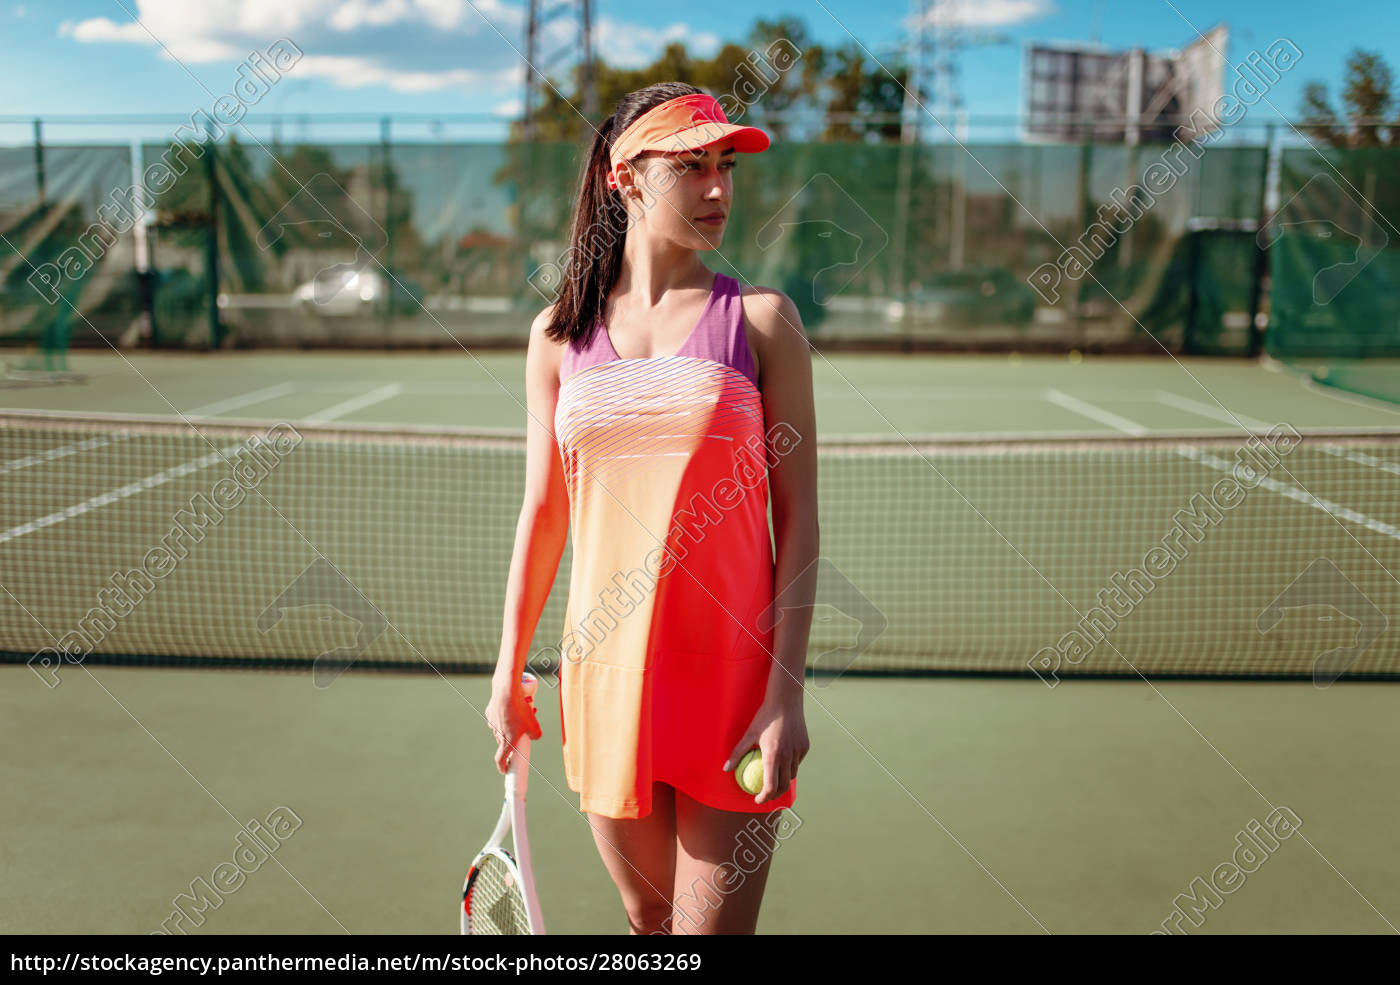 attractive, female, tennis, player, on, outdoor - 28063269